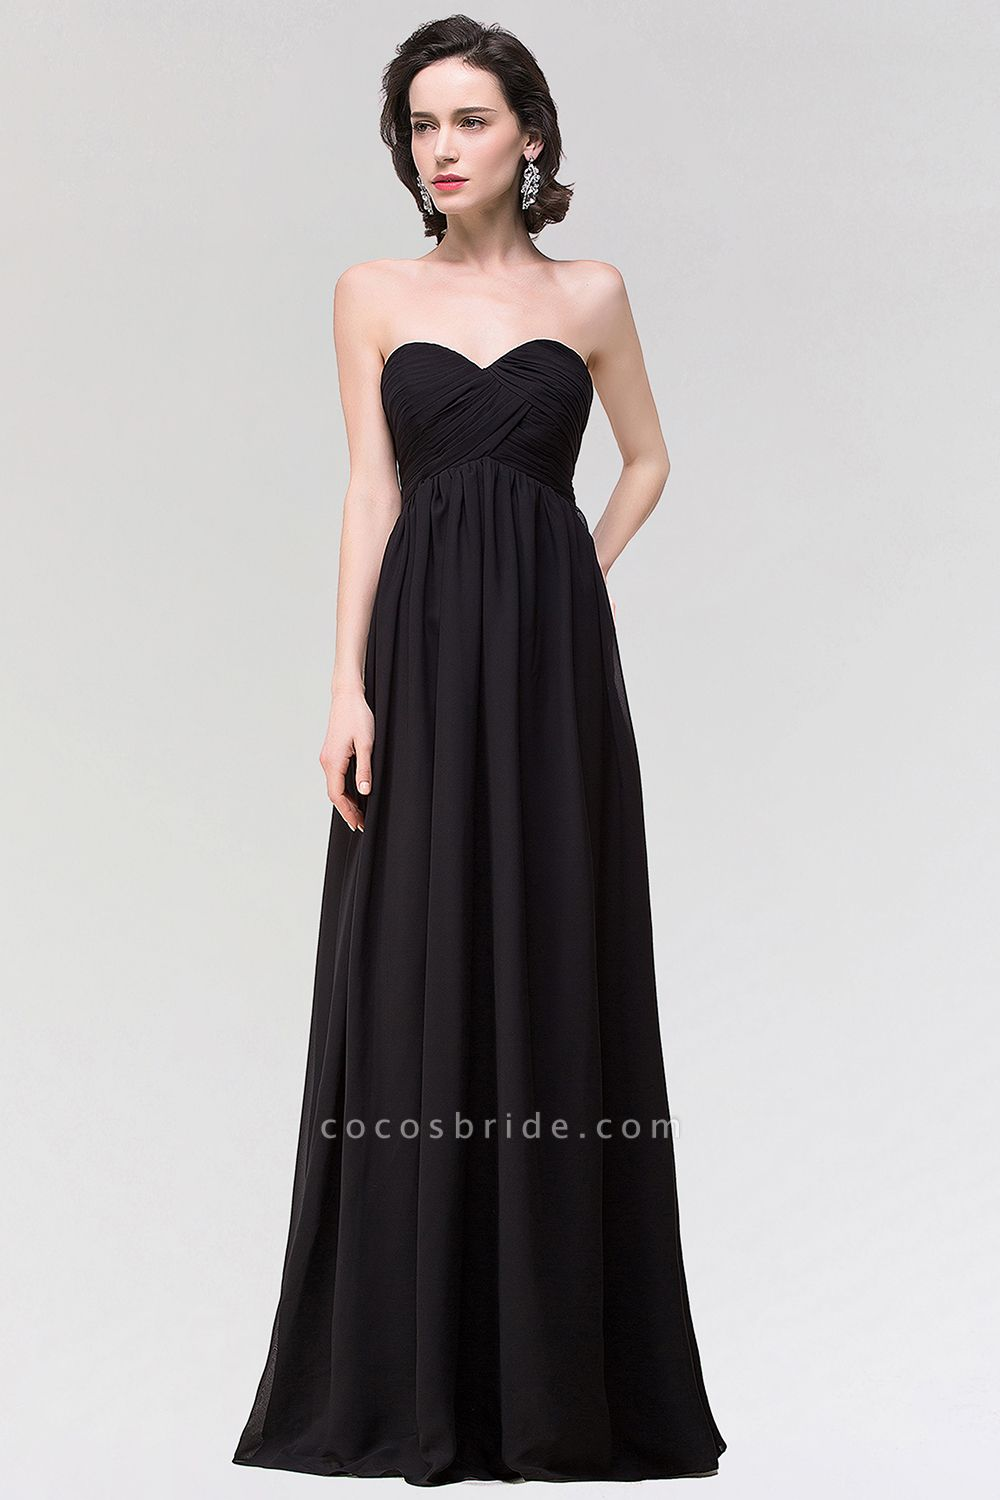 A-line Chiffon Strapless Sweetheart Sleeveless Floor-Length Bridesmaid Dress with Ruffles